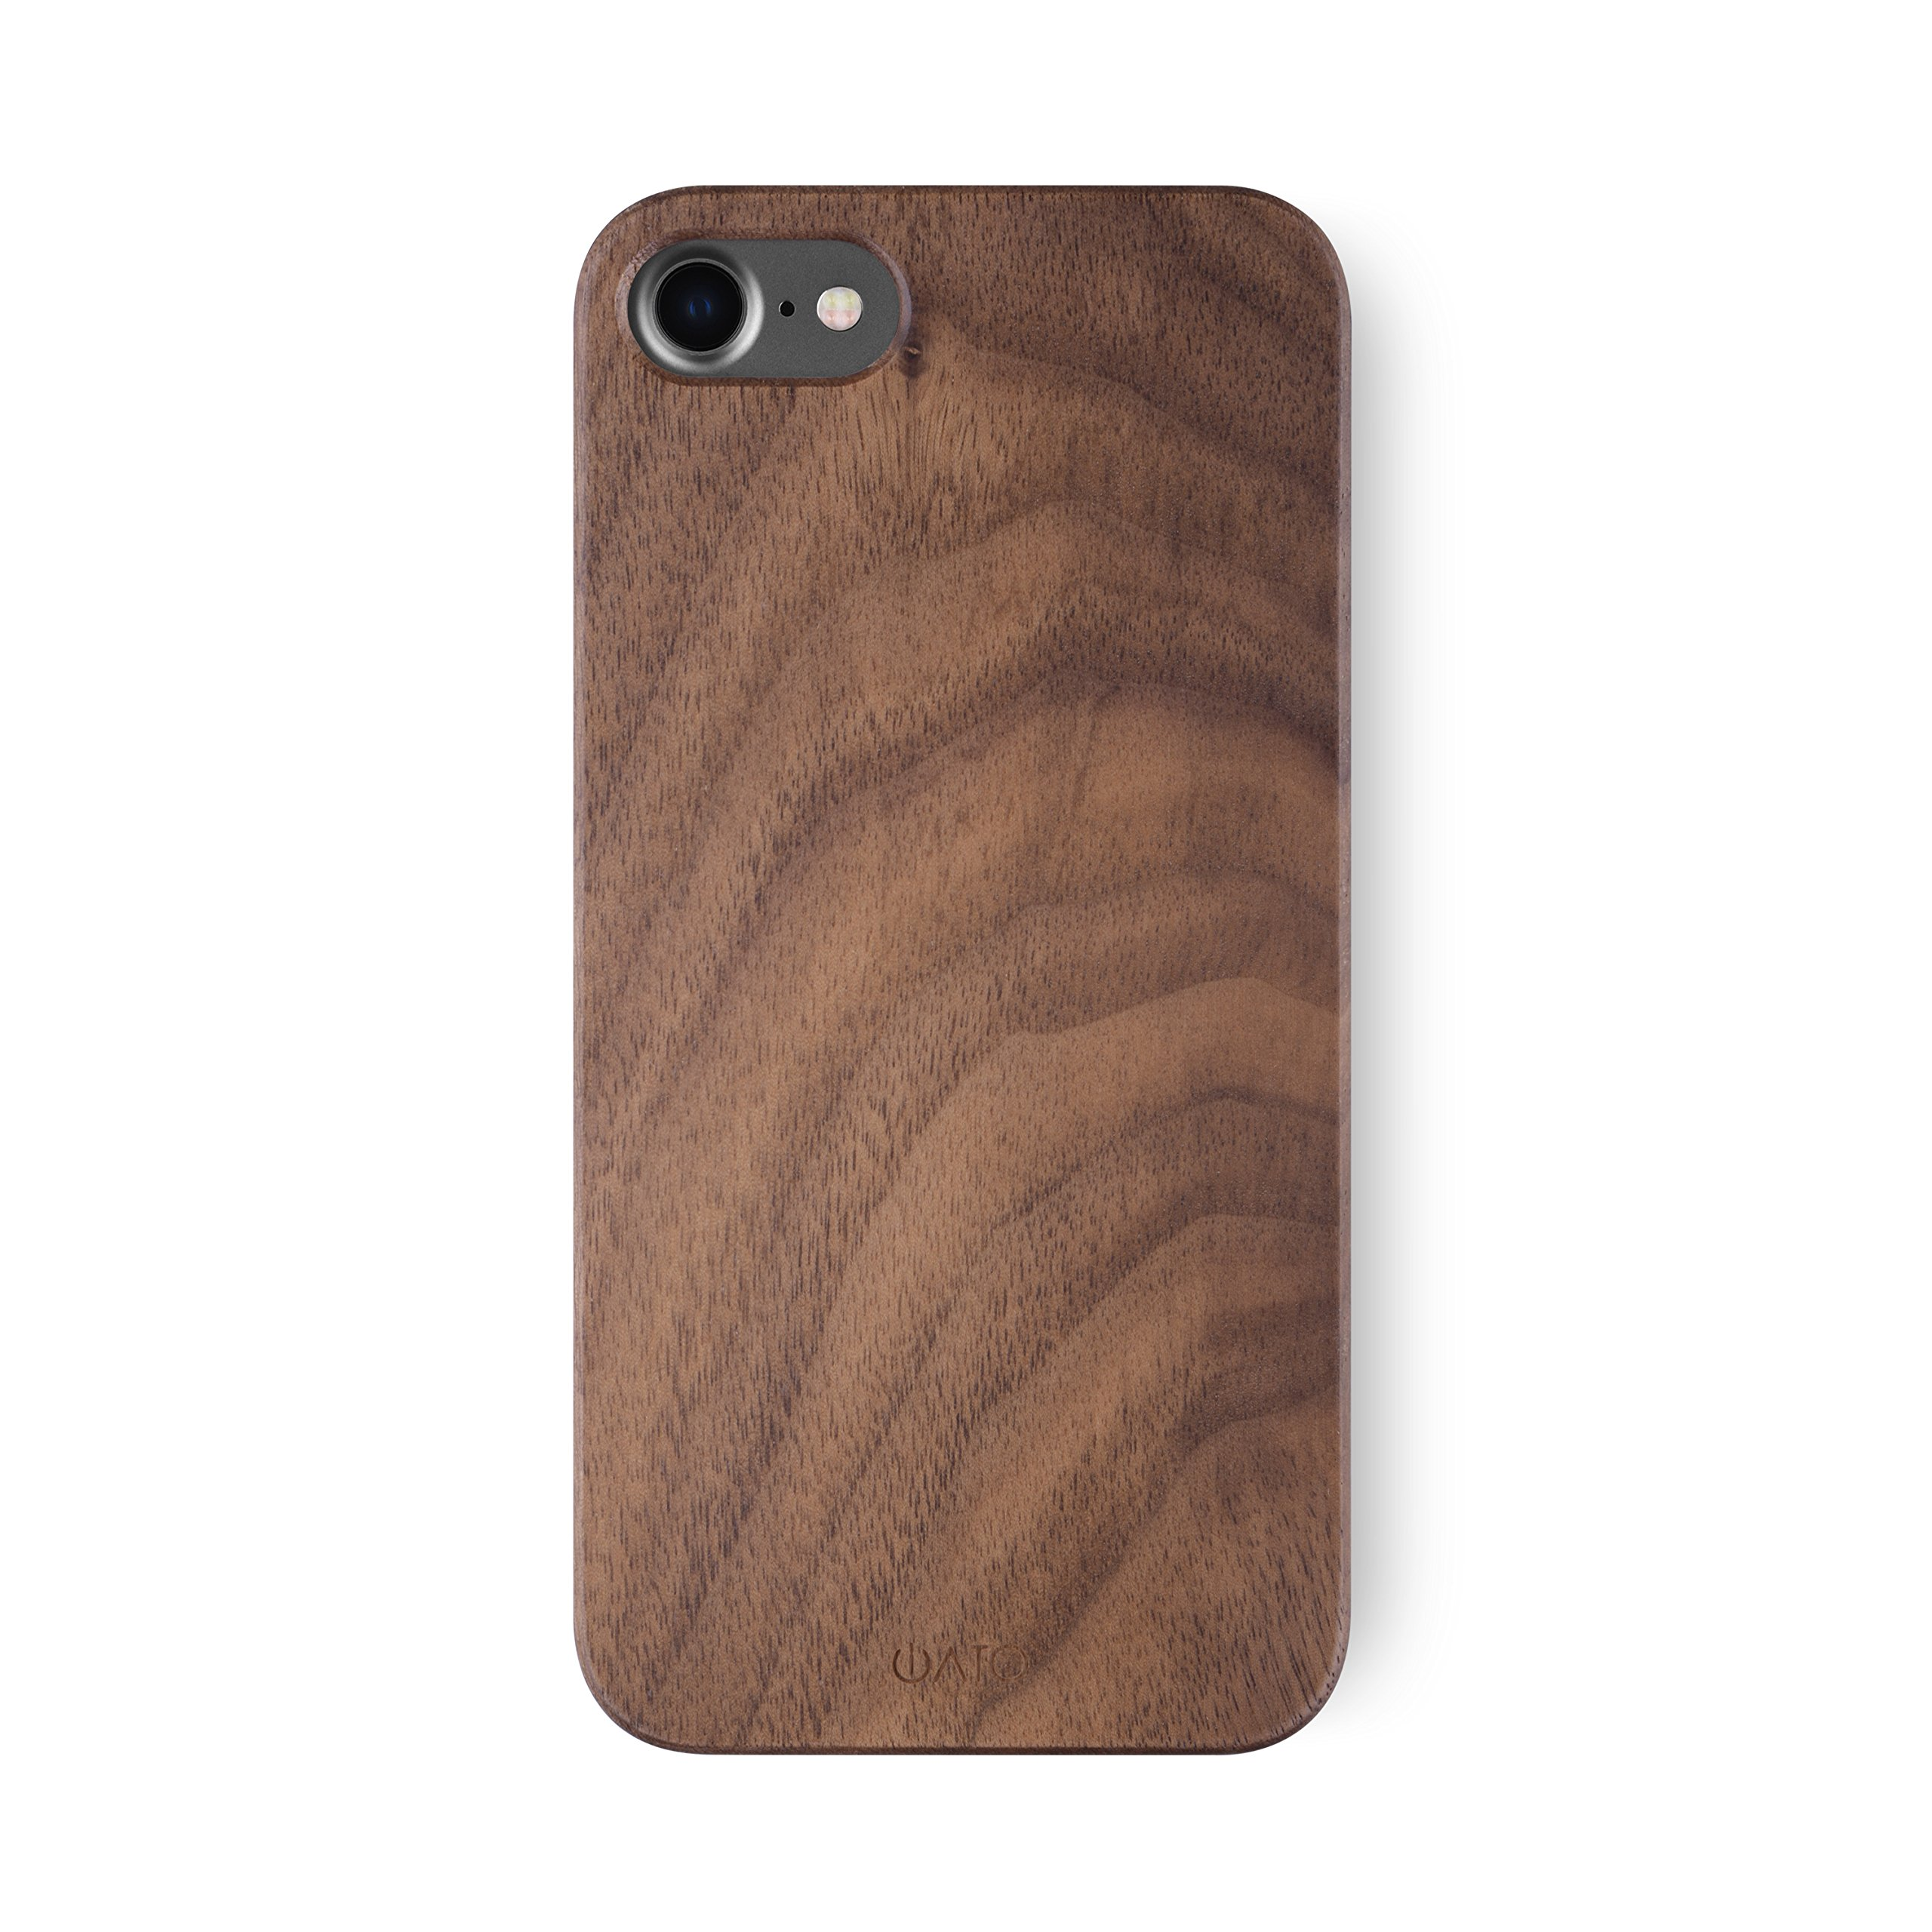 iATO iPhone 7/8 Case. Real Walnut Wood Bumper Unique, Stylish & Classy Wooden Premium Protective Accessory Snap-on Back Cover for iPhone 7/8